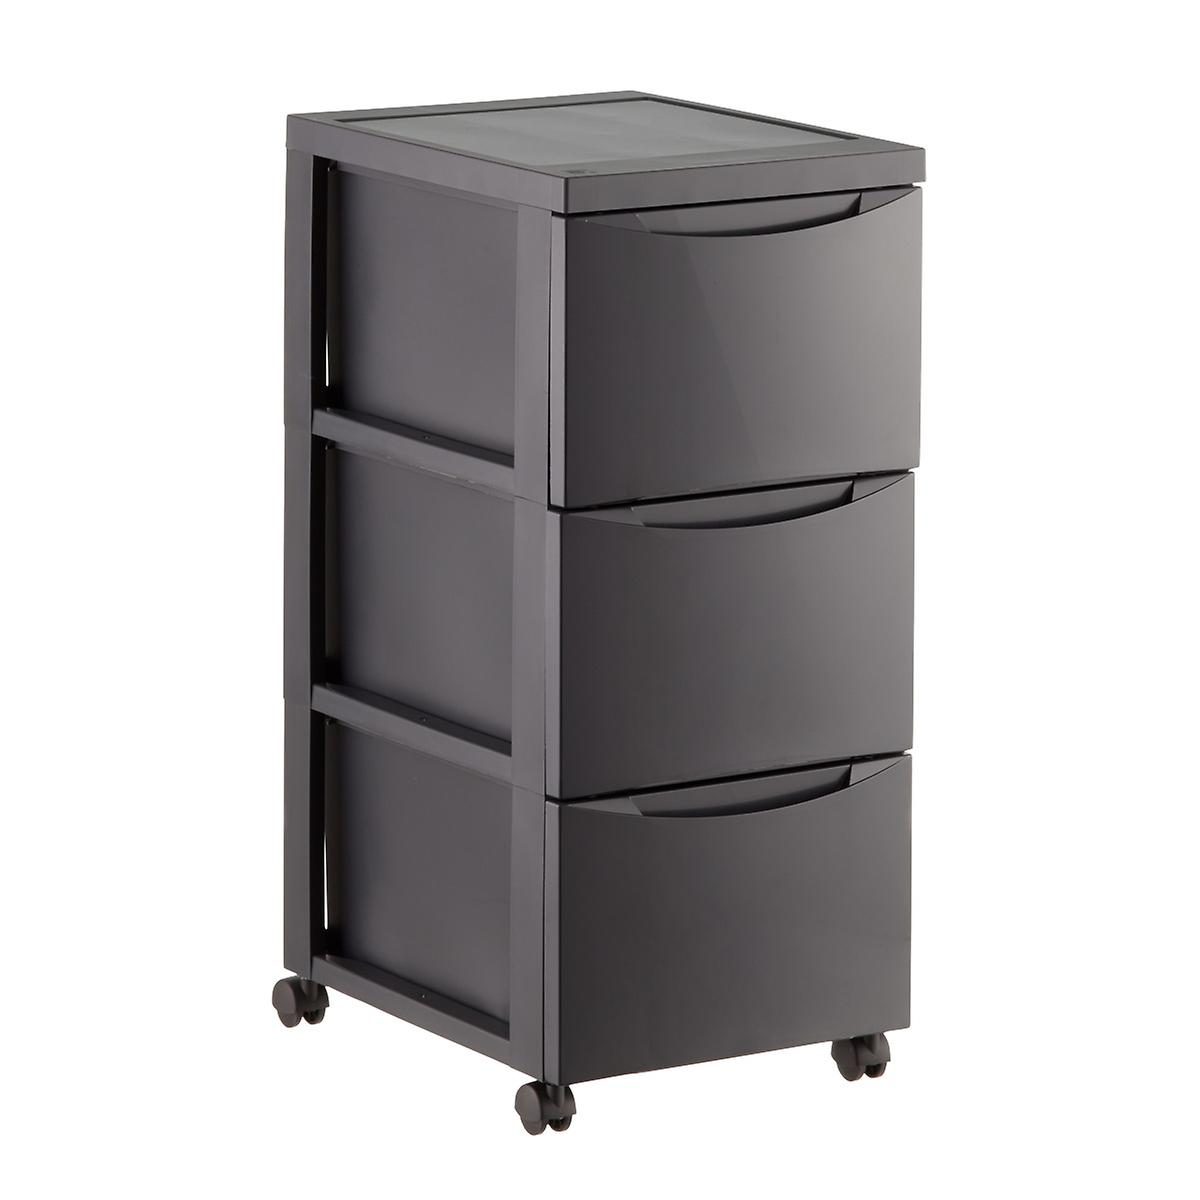 Grey 3 Drawer Plastic Storage Chest With Wheels